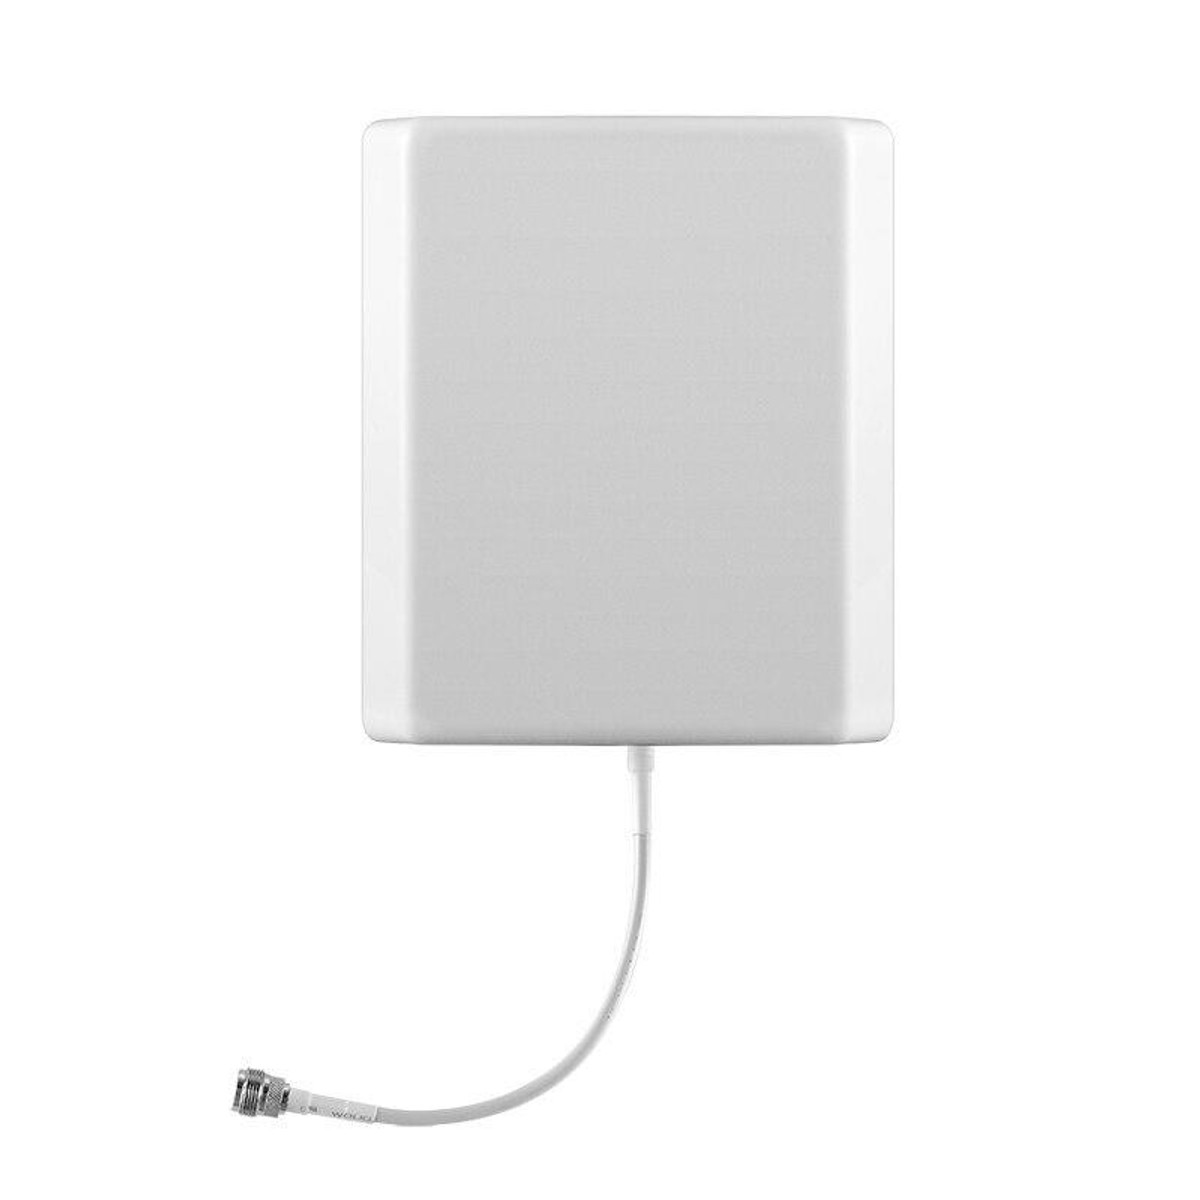 SureCall SureCall Fusion Install Cell Signal Booster Kit